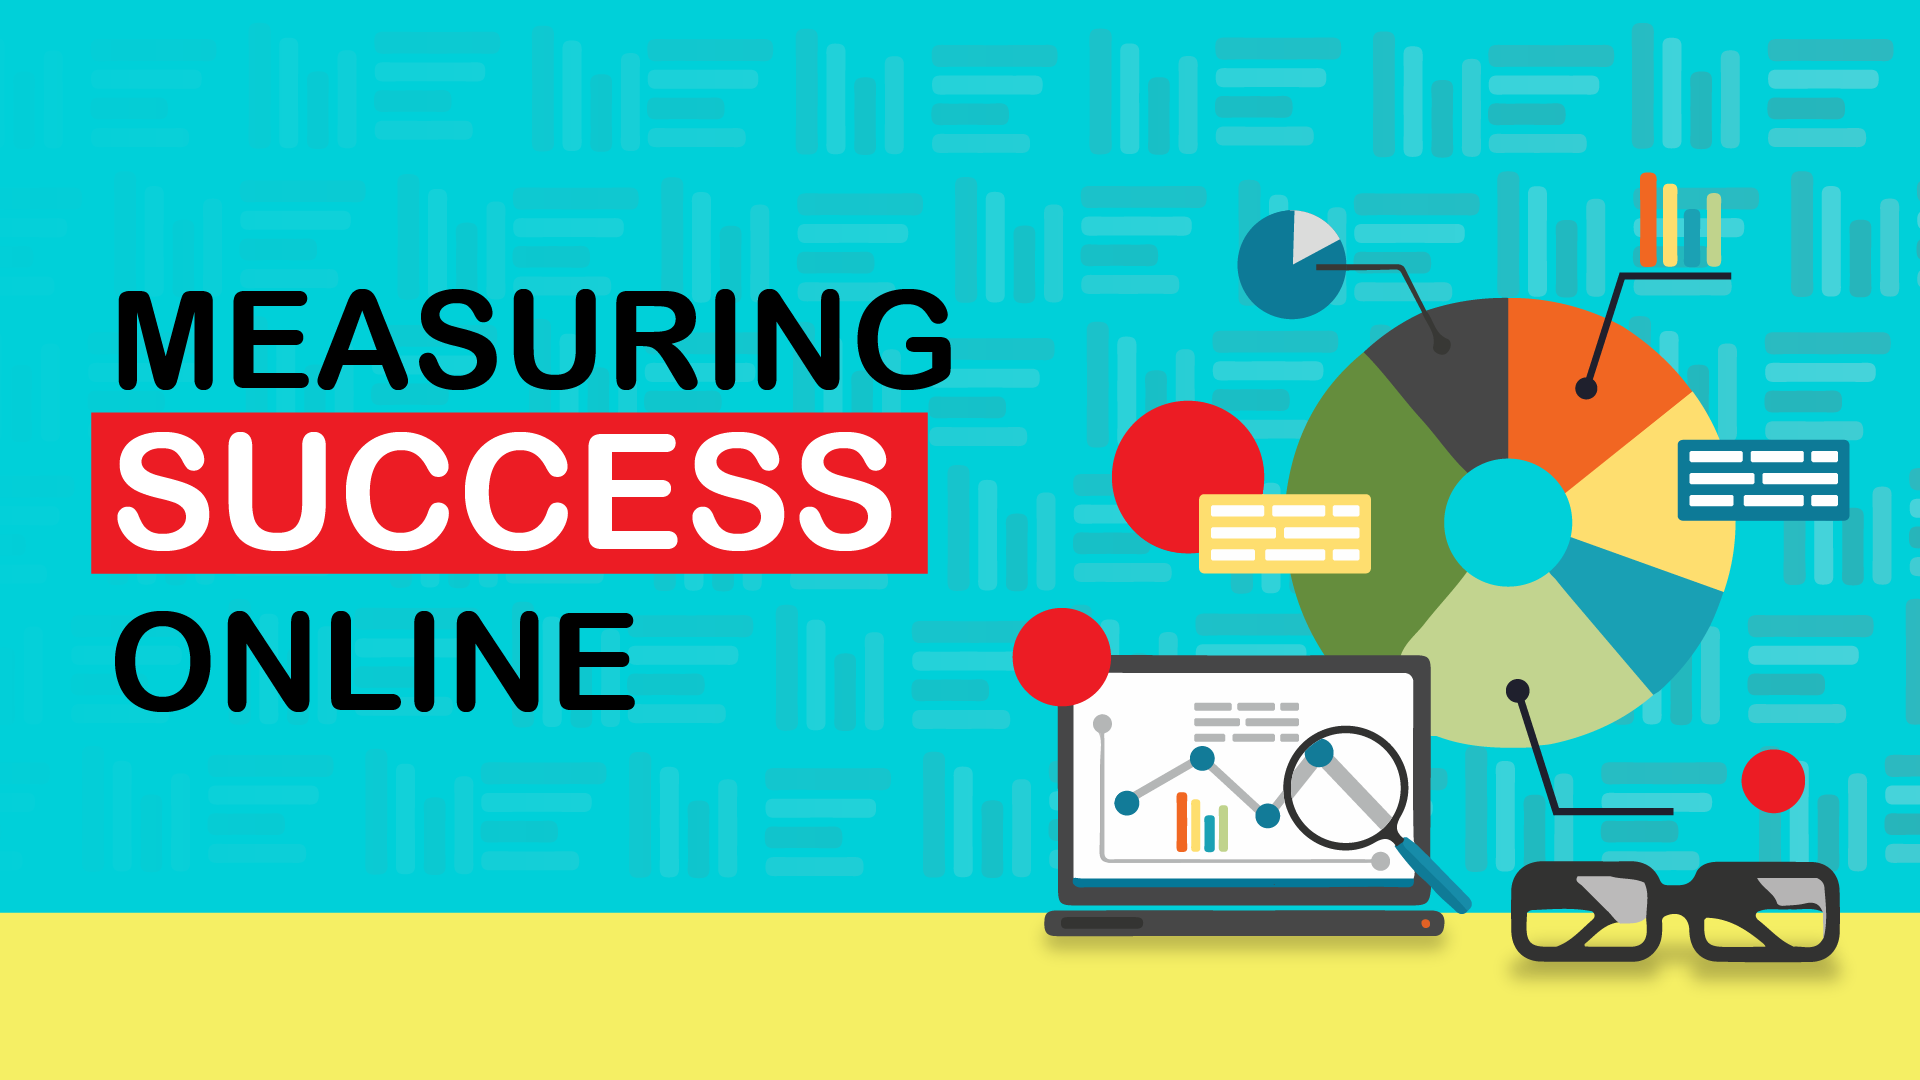 Tips-for-Measuring-Success-Online-FacebookEvent-1920x1080